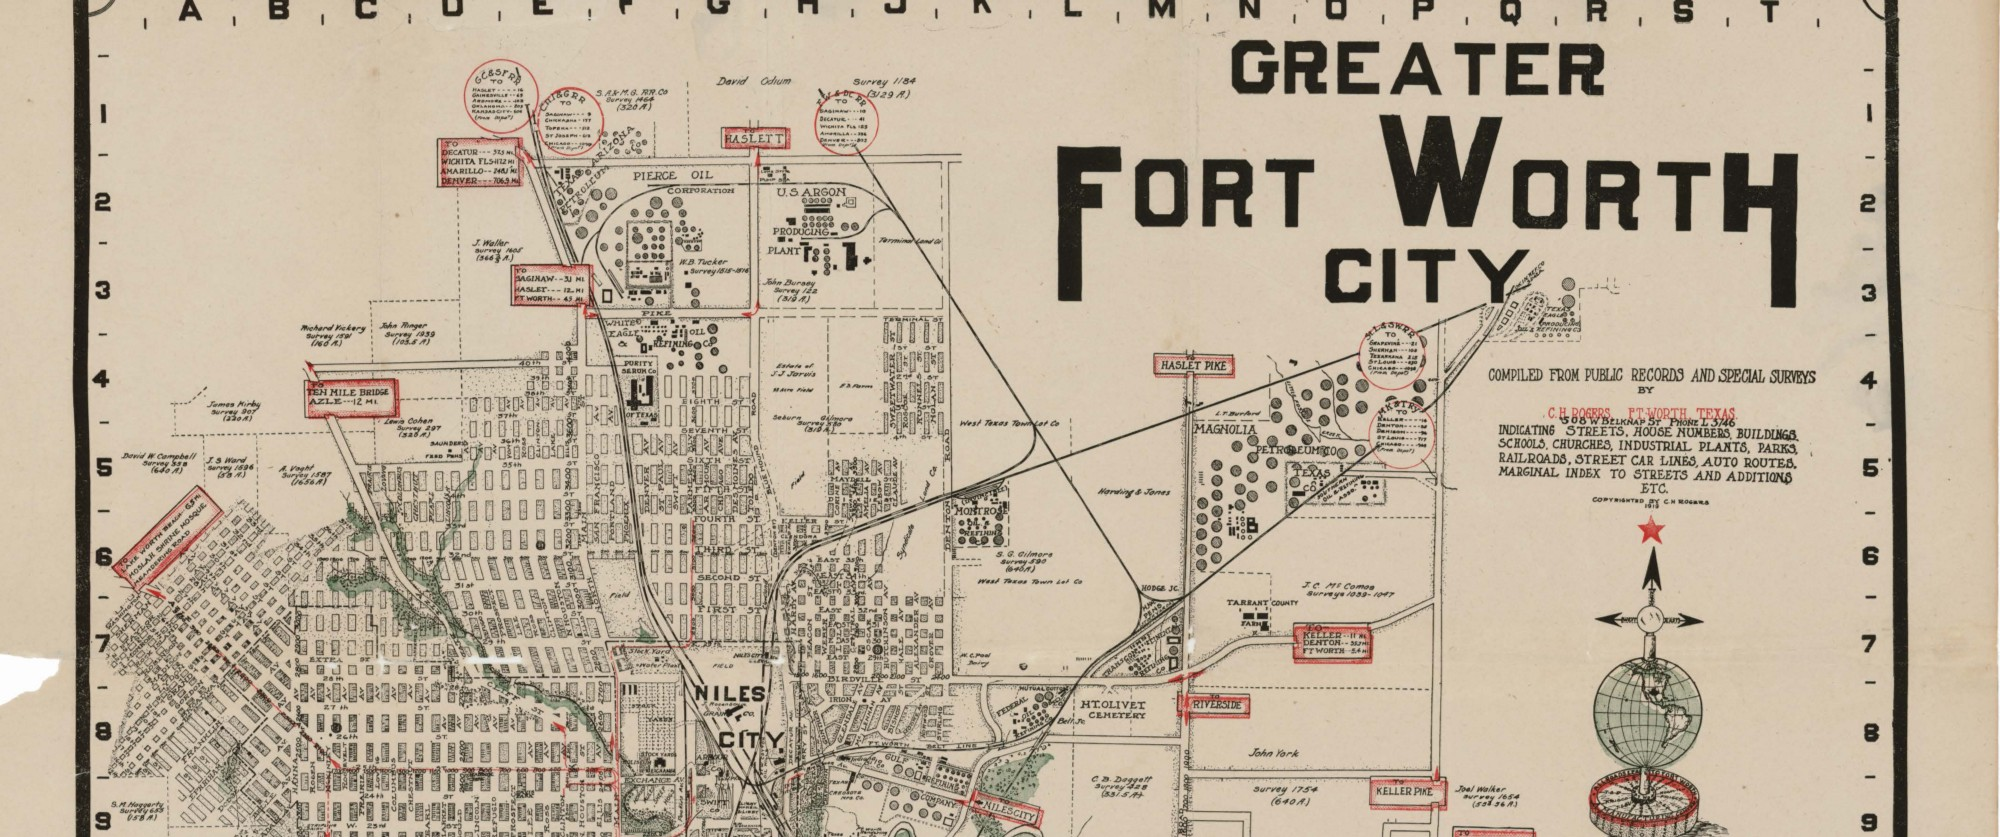 Greater Fort Worth City 1919 Save Texas History Medium